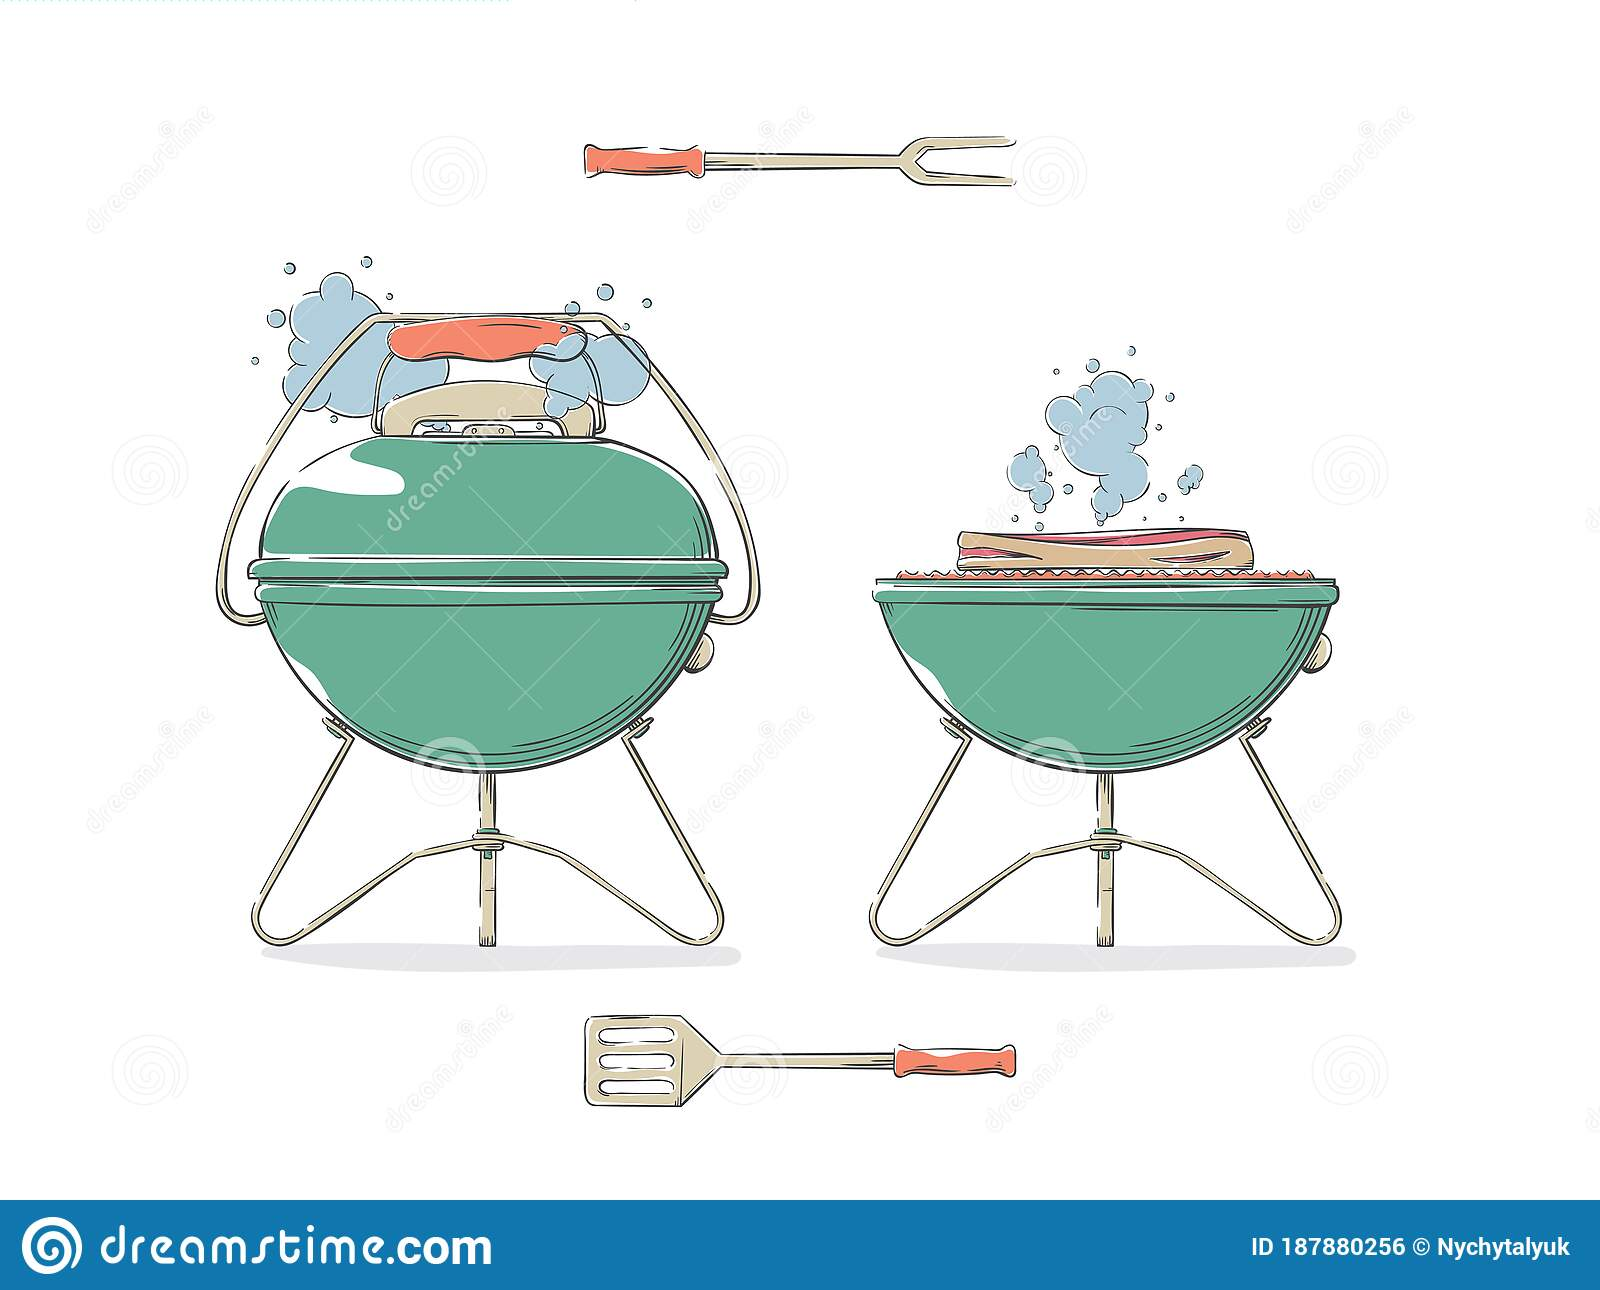 Drawn Barbecue Grill Elements For Restaurant Menu Or Weekend Outdoor Lunch Or Picnic Stock Vector Illustration Of Elements Lunch 187880256